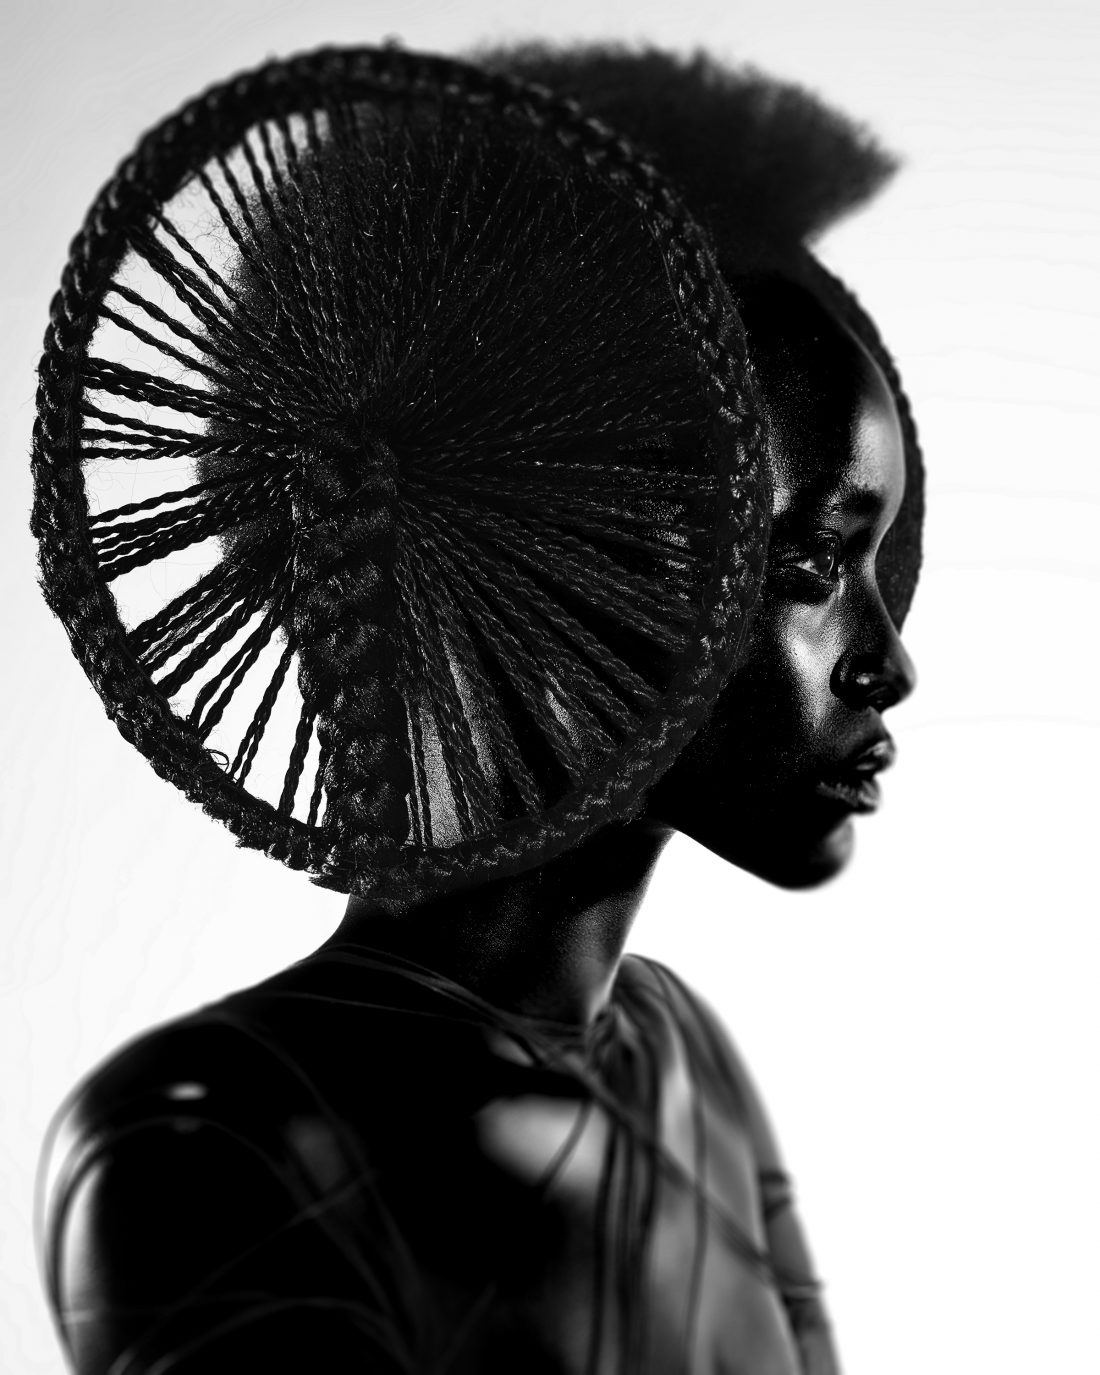 Charlotte Mensah inducted into hairdressing BHA Hall of Fame